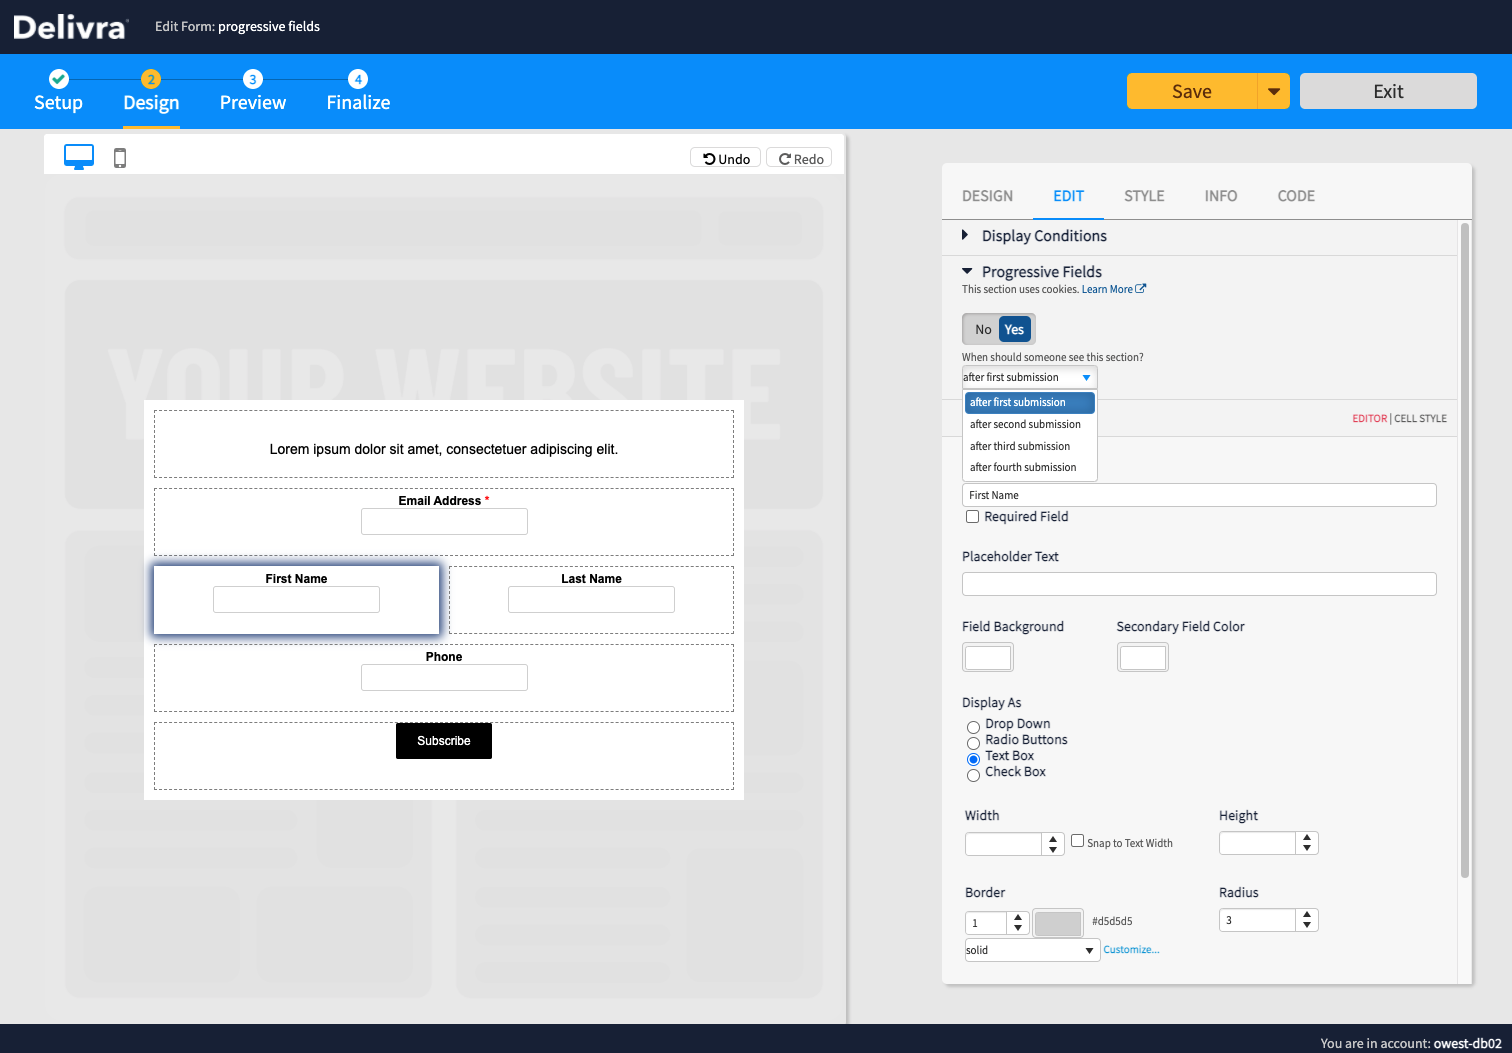 The new progressive profiling feature in Delivra can boost your sales, build better lead profiles, and increase your conversion rates with shorter forms.